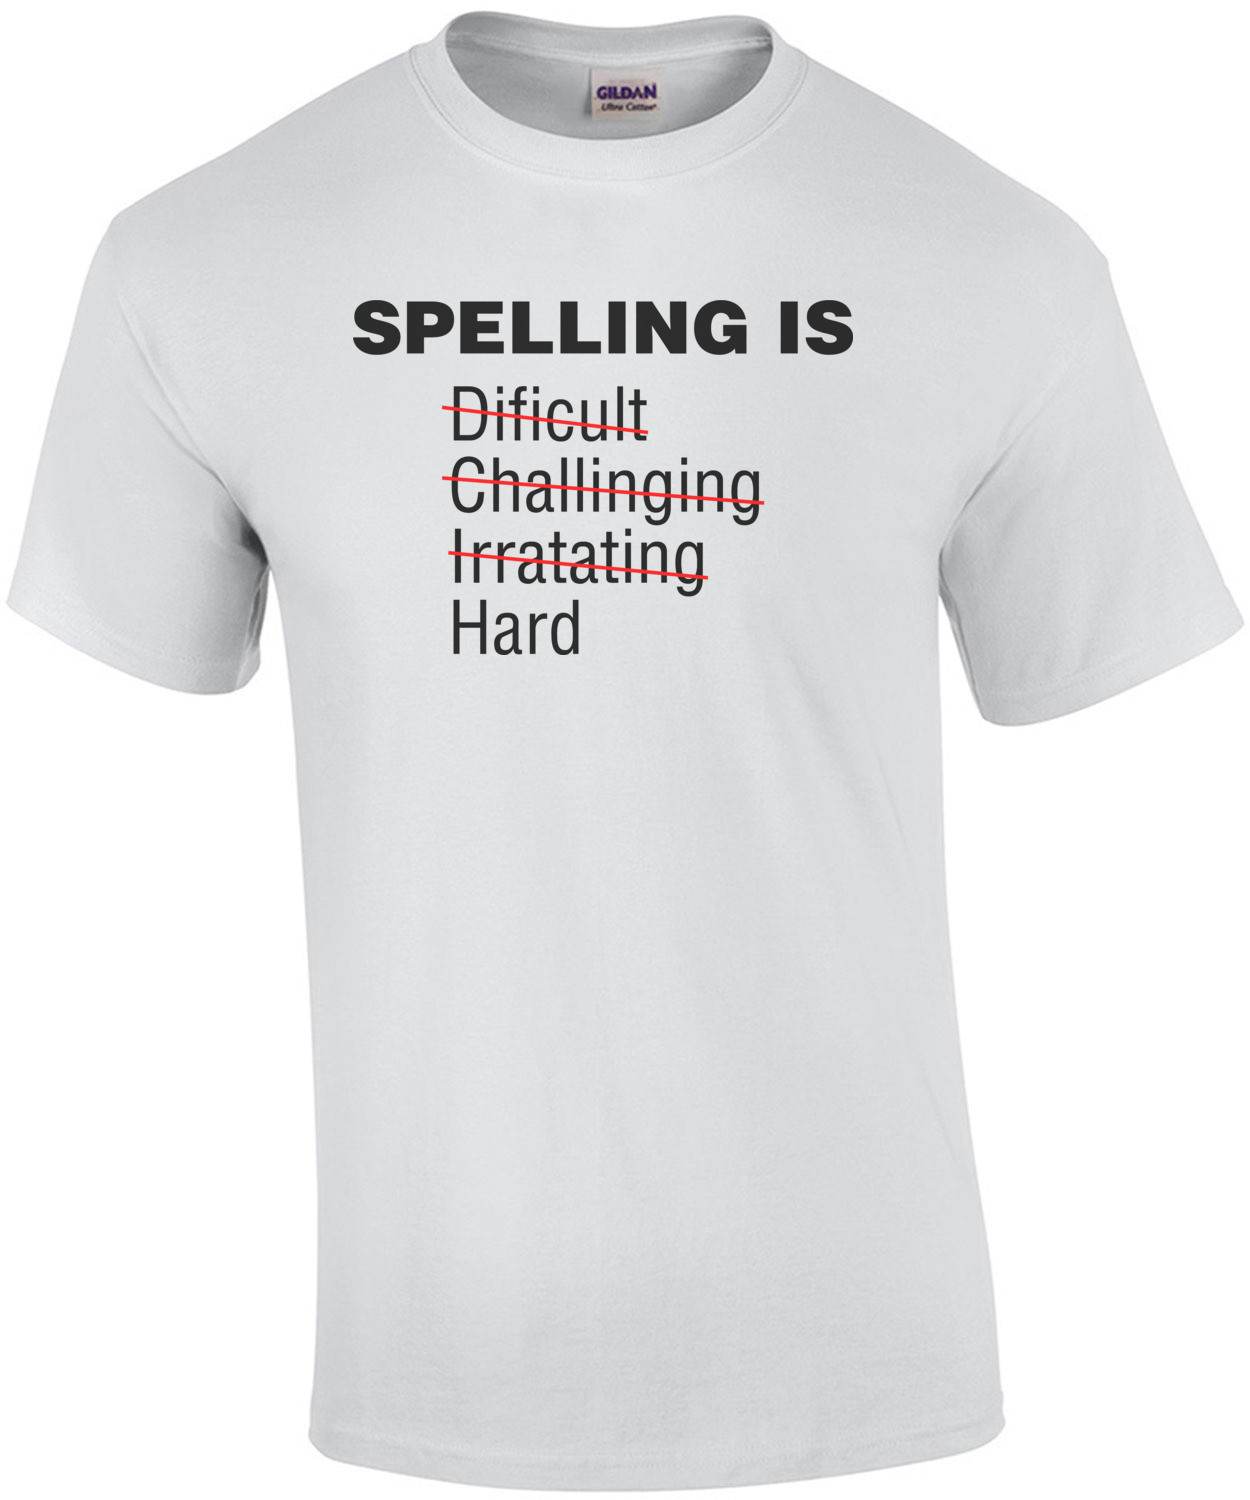 Spelling Is Dificult... - Funny Shirt